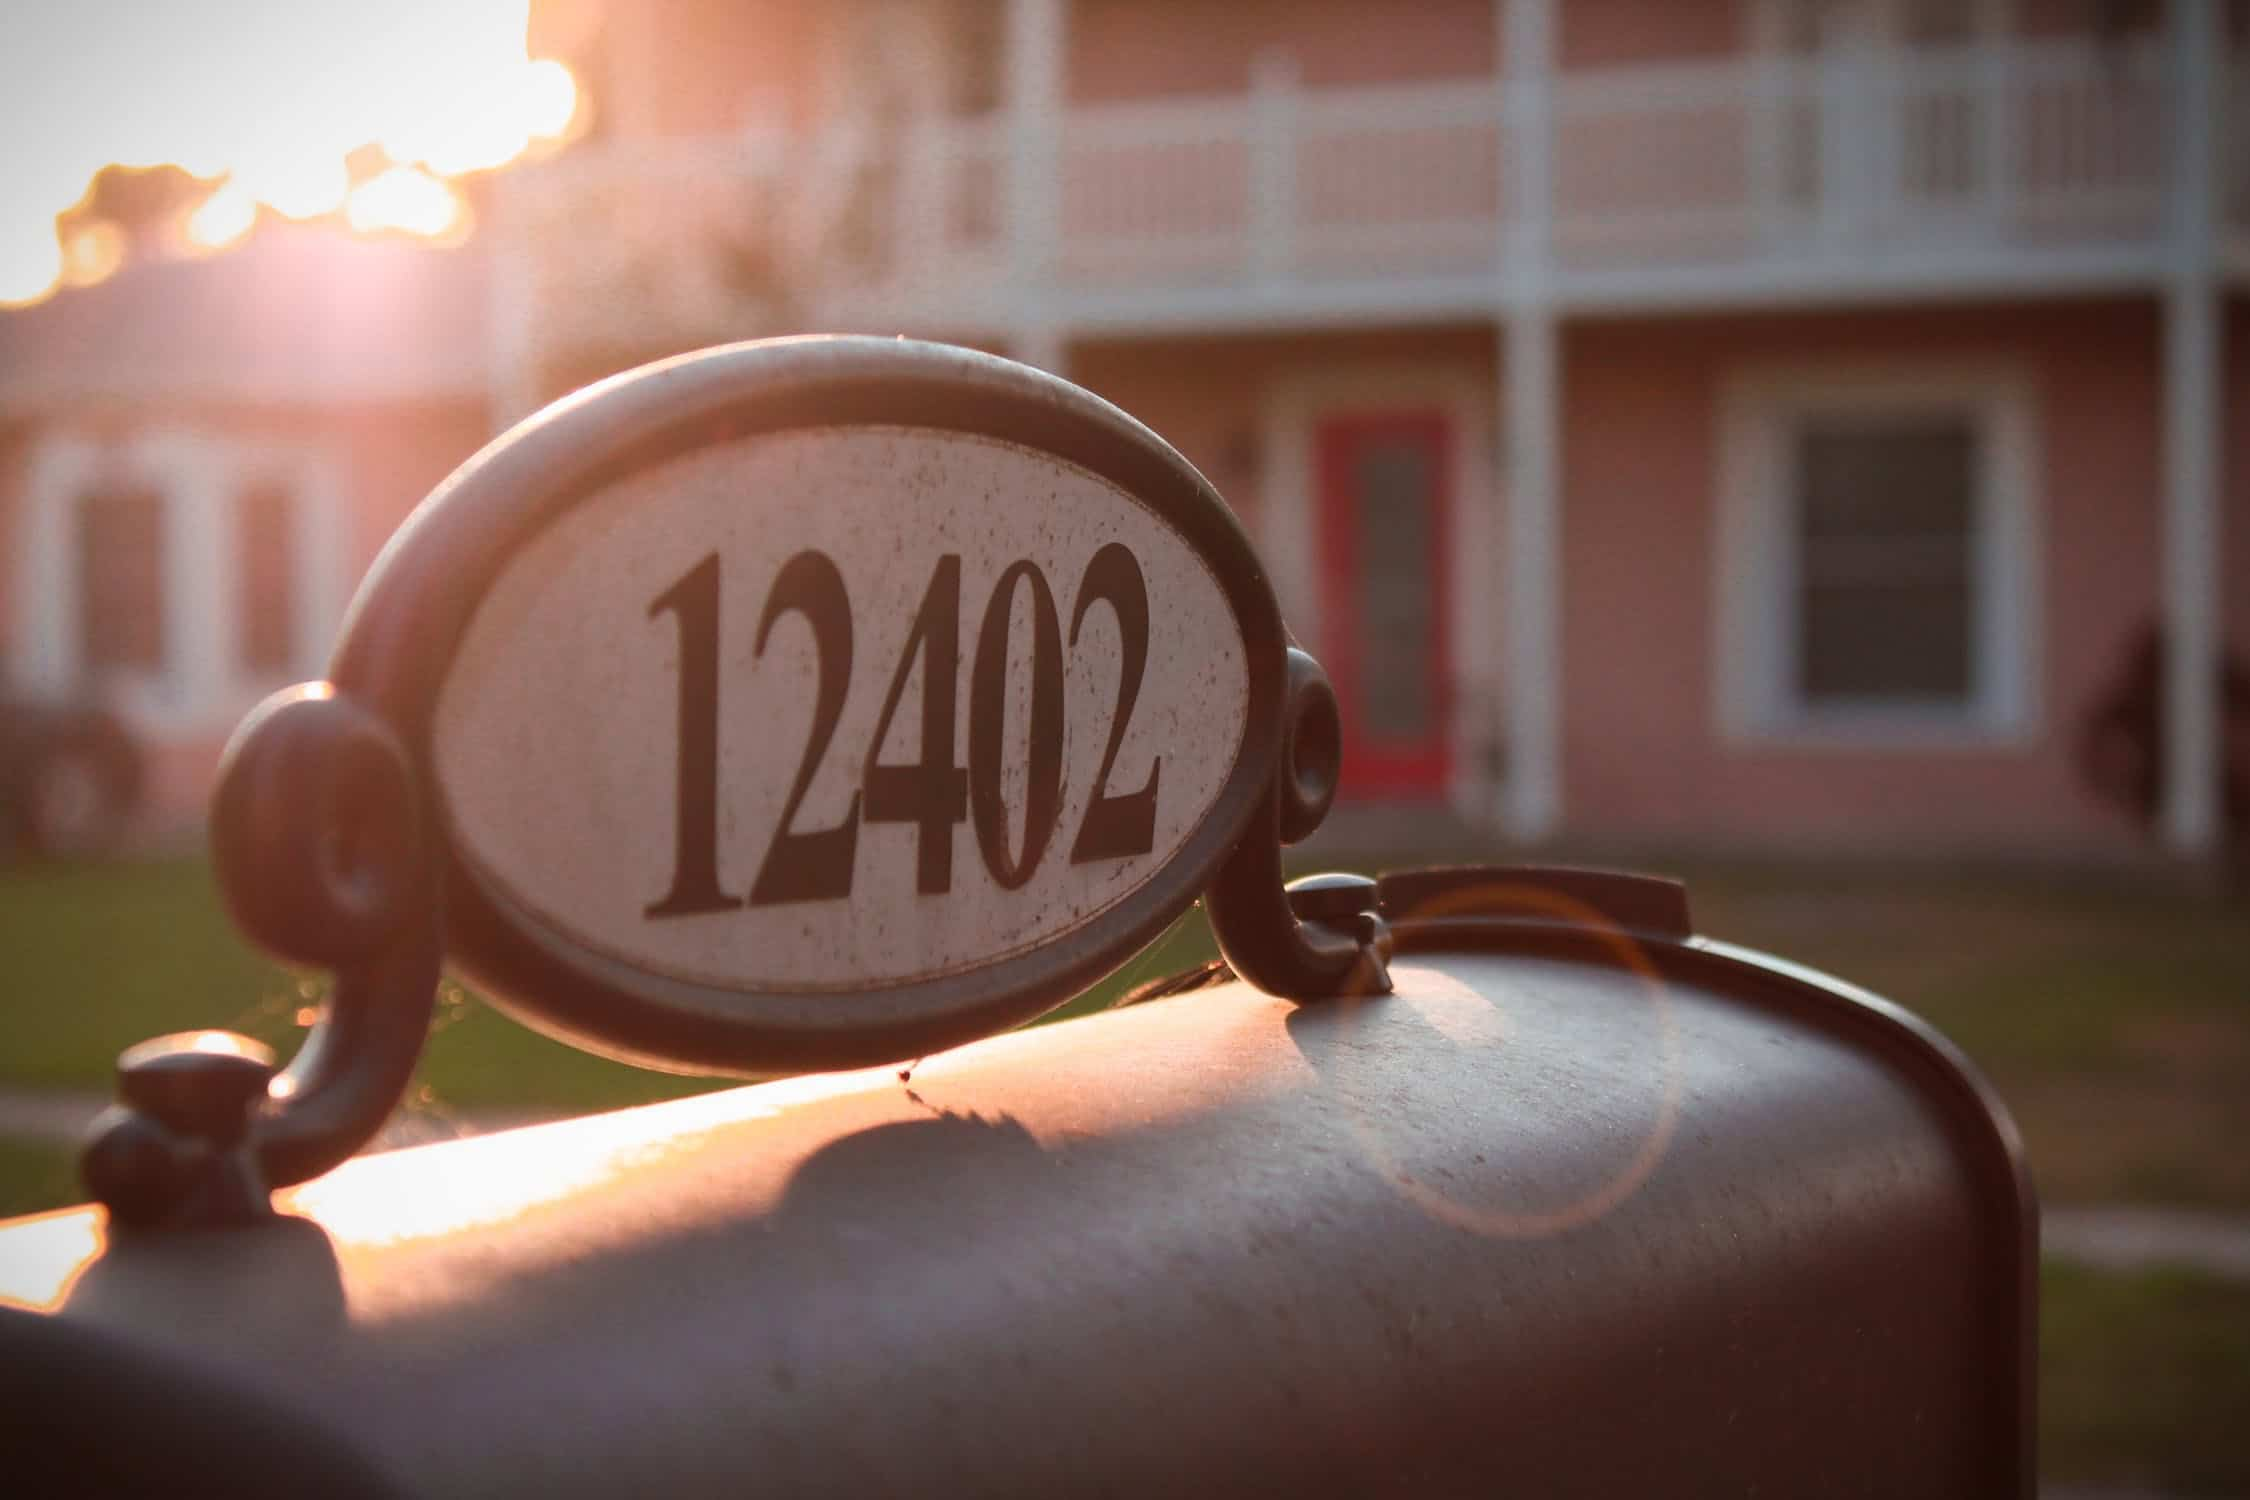 3 Key Tips for Choosing Highly Visible House Numbers